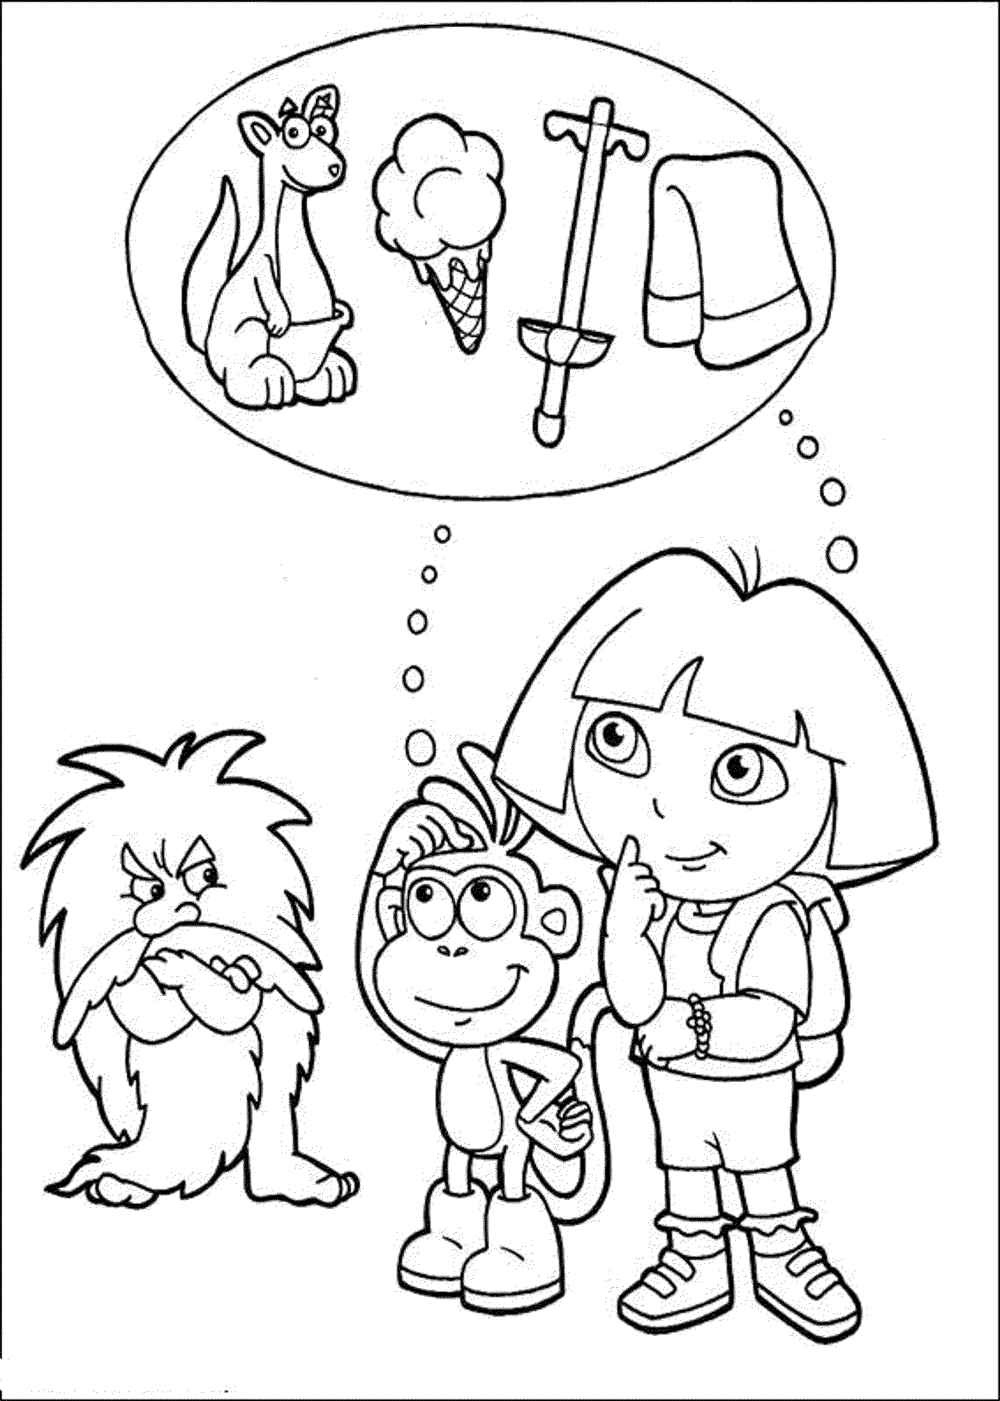 dora colouring print download dora coloring pages to learn new things colouring dora 1 2